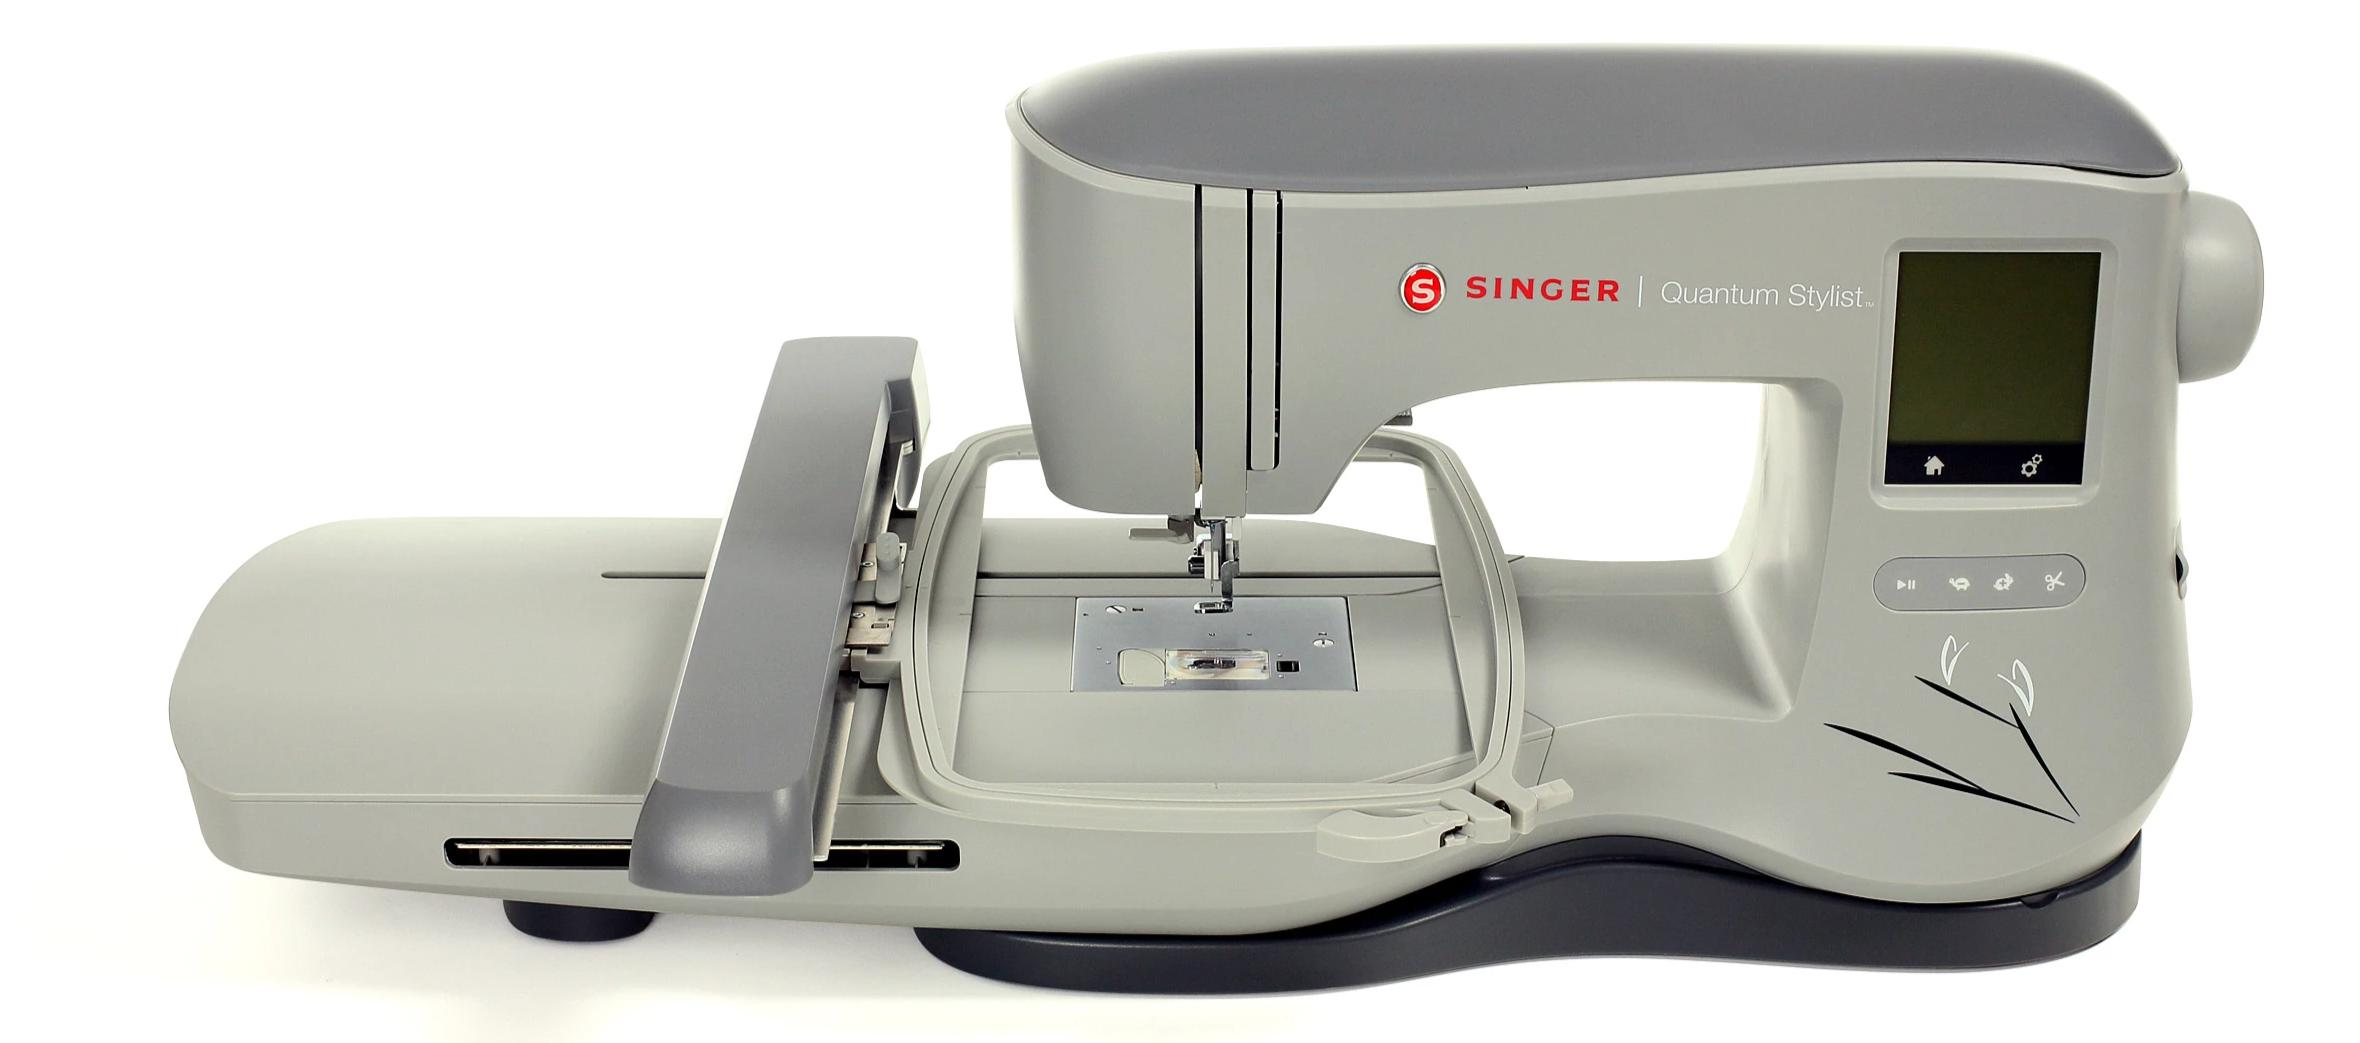 Singer EM200 Embroidery Machine * Black Friday Price Drop *